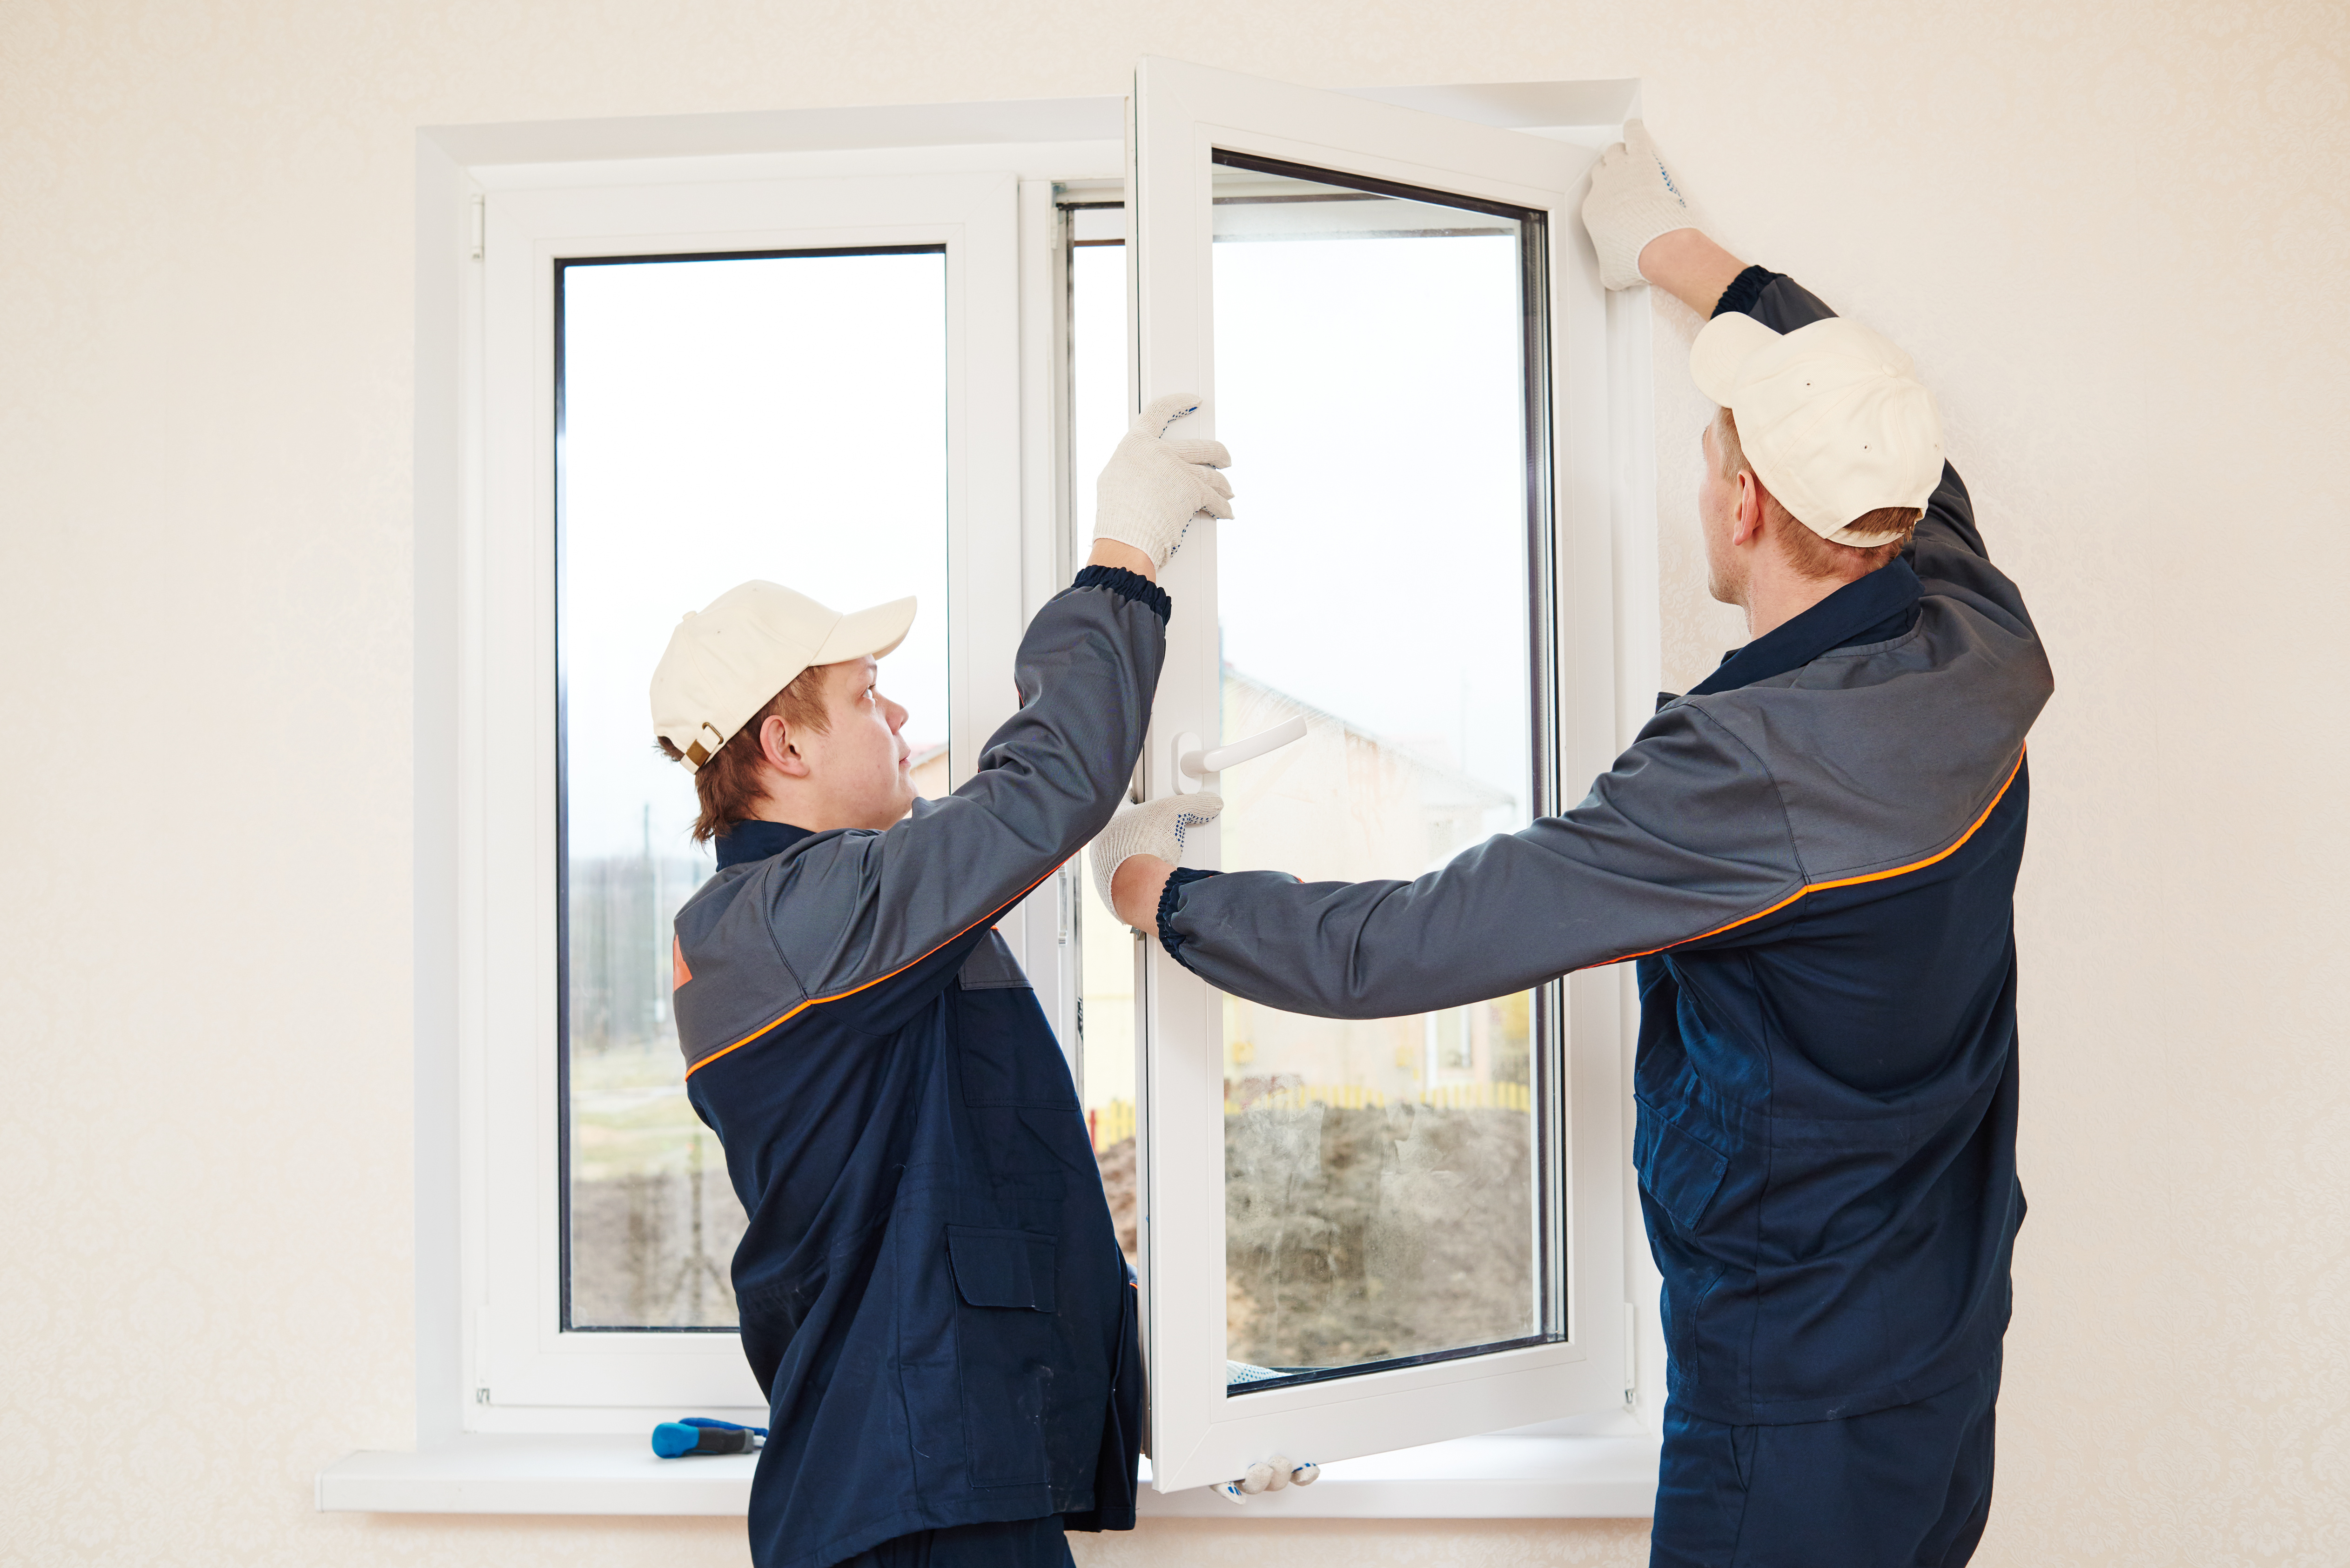 State Glass provides five- to 10-year warranties for replacement windows.